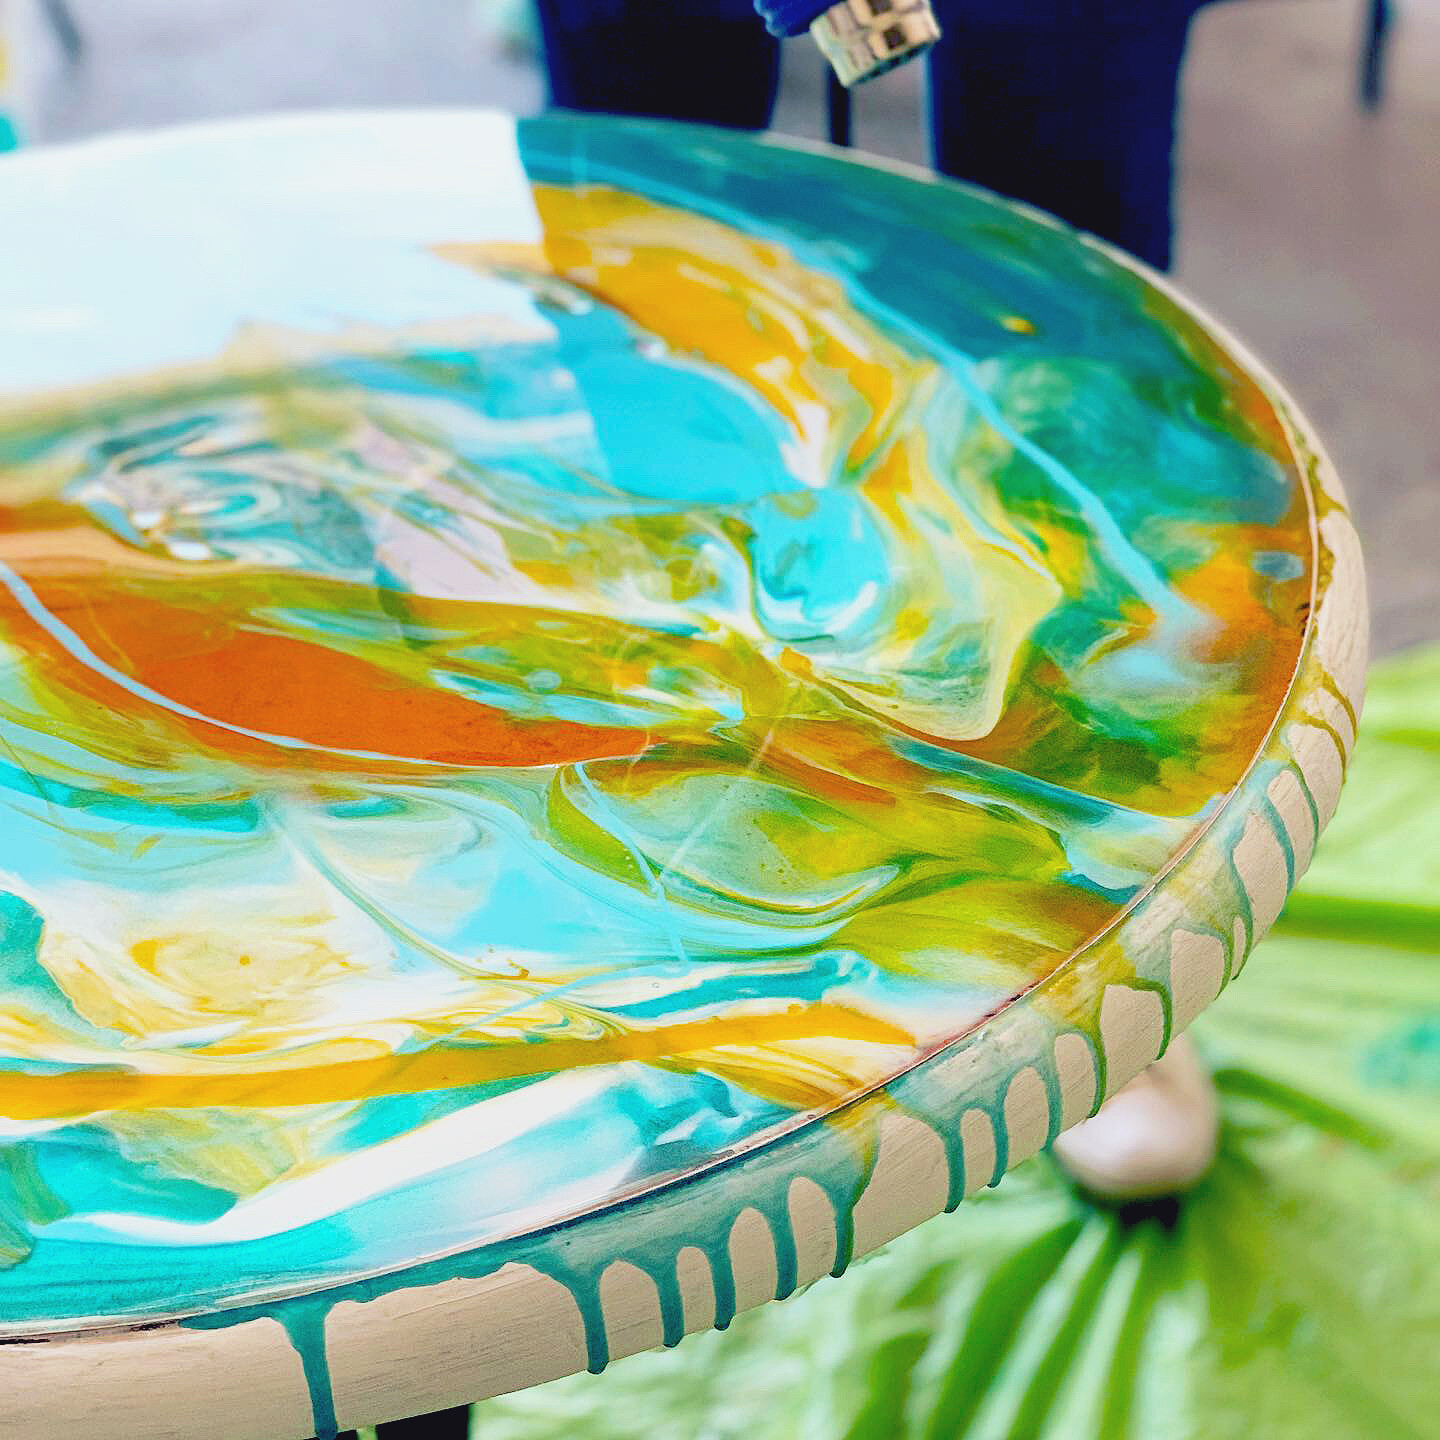 Resin Upcycle Your Furniture Workshop - Saturday 8th May 2-5pm